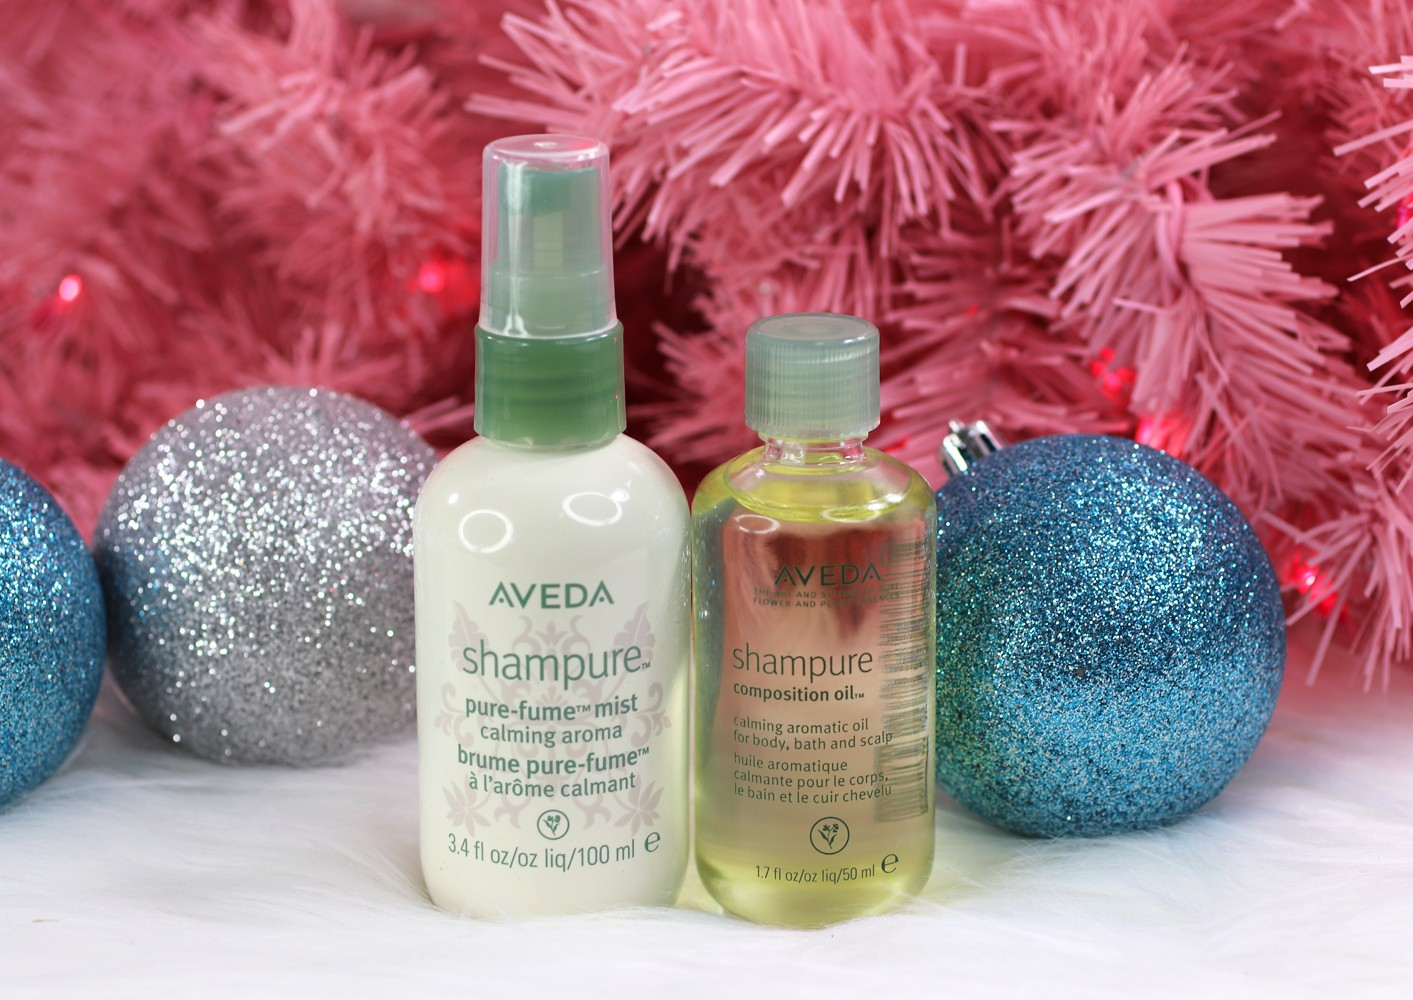 Aveda Shampure Purefume Mist and Composition Oil